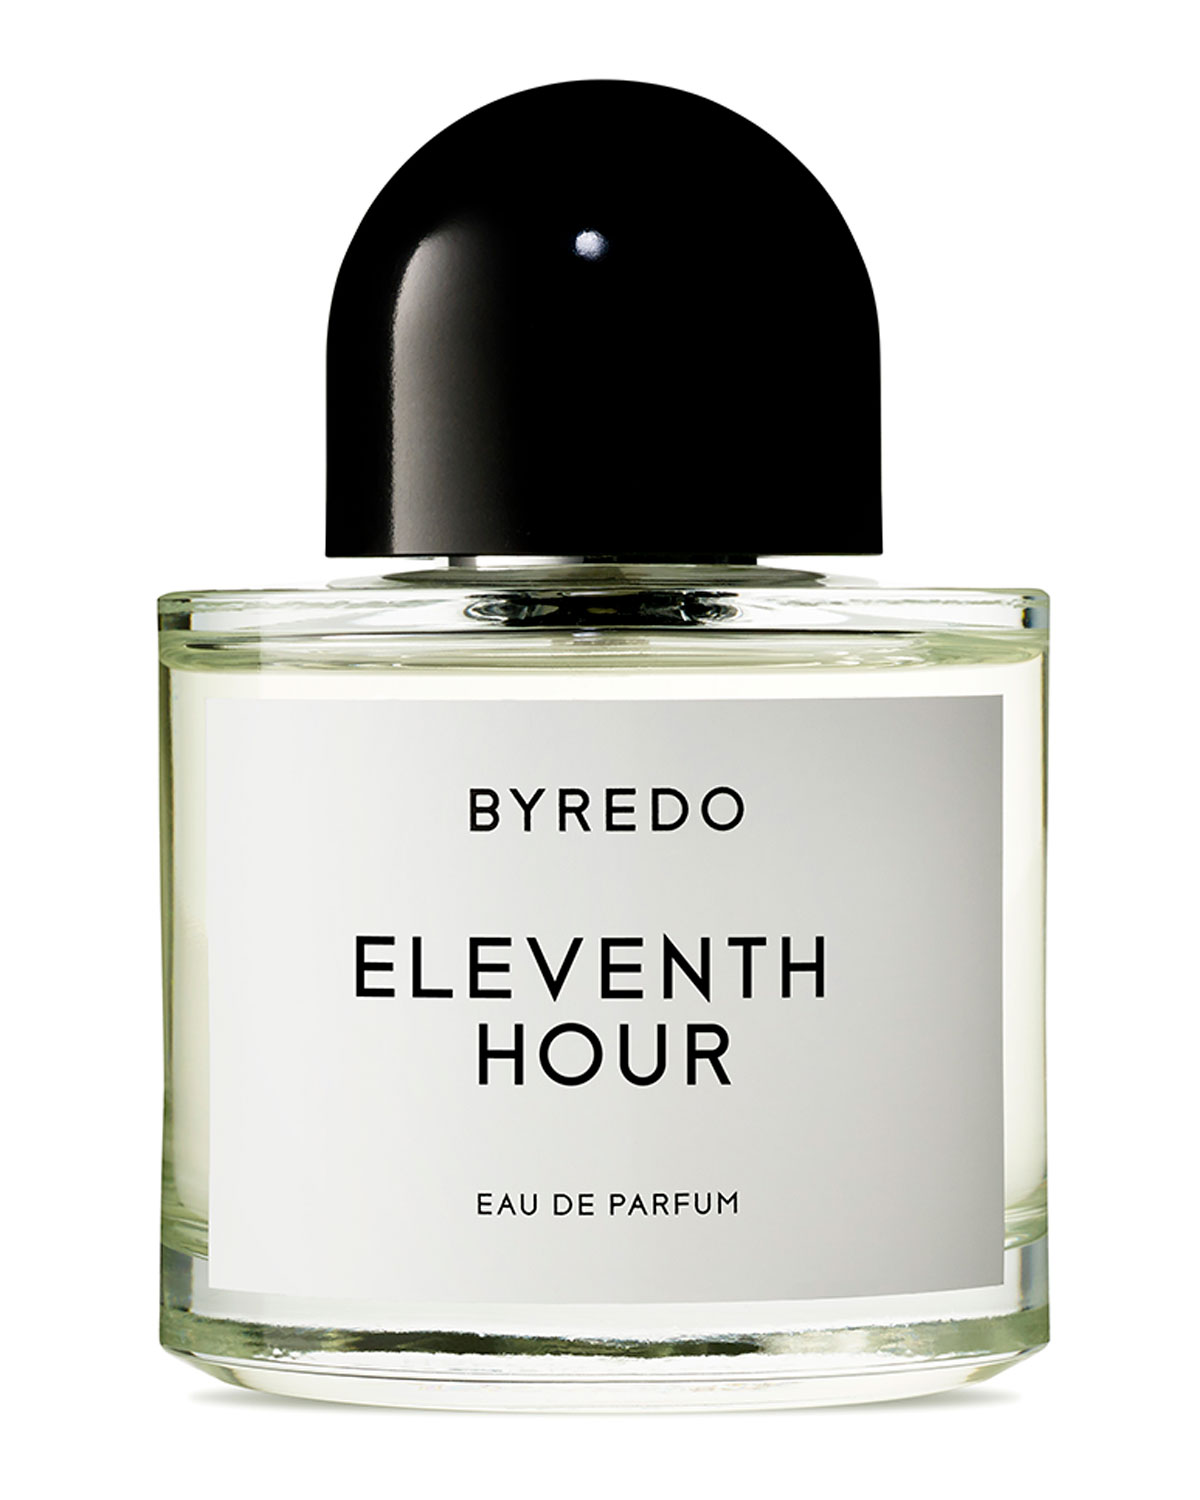 Eleventh Hour Eau de Parfum, 3.4 oz./ 100 mL